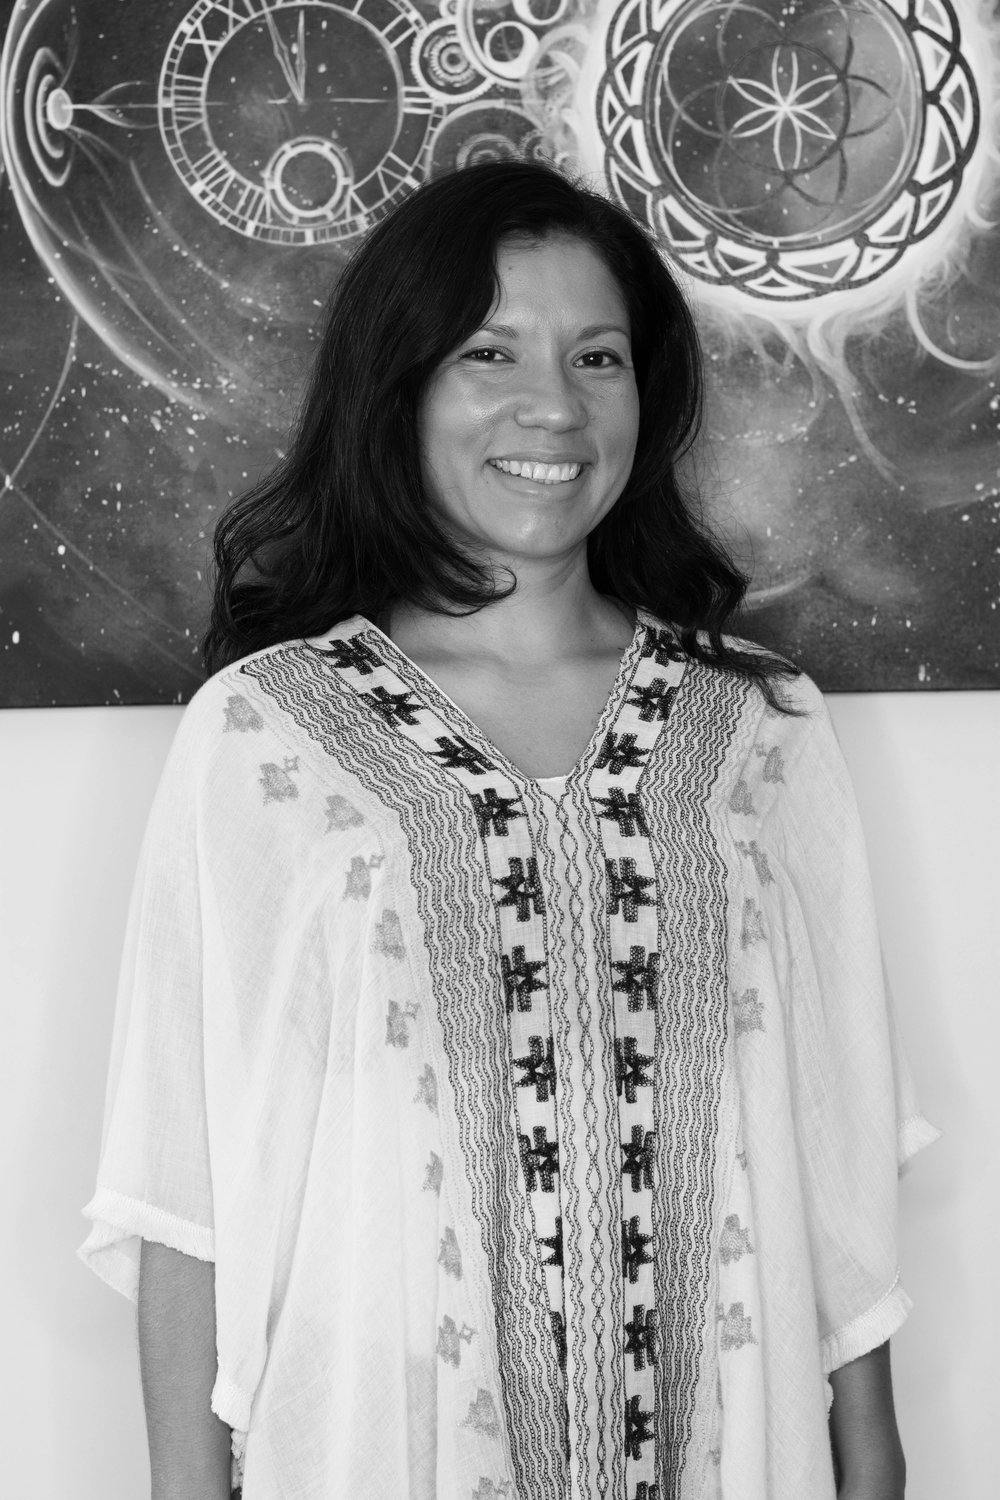 NAME :Marcia Lopez LOCATION :Redondo Beach, California SERVICES :∆ Mayan Abdominal Therapy ∆ Yoni (vaginal) steaming ∆Herbal remedies ∆ Yoga ∆ Reiki and other holistic therapies for female reproductive wellness. ∆ Women centric classes and workshops, provide doula services and I am available for speaking engagements.